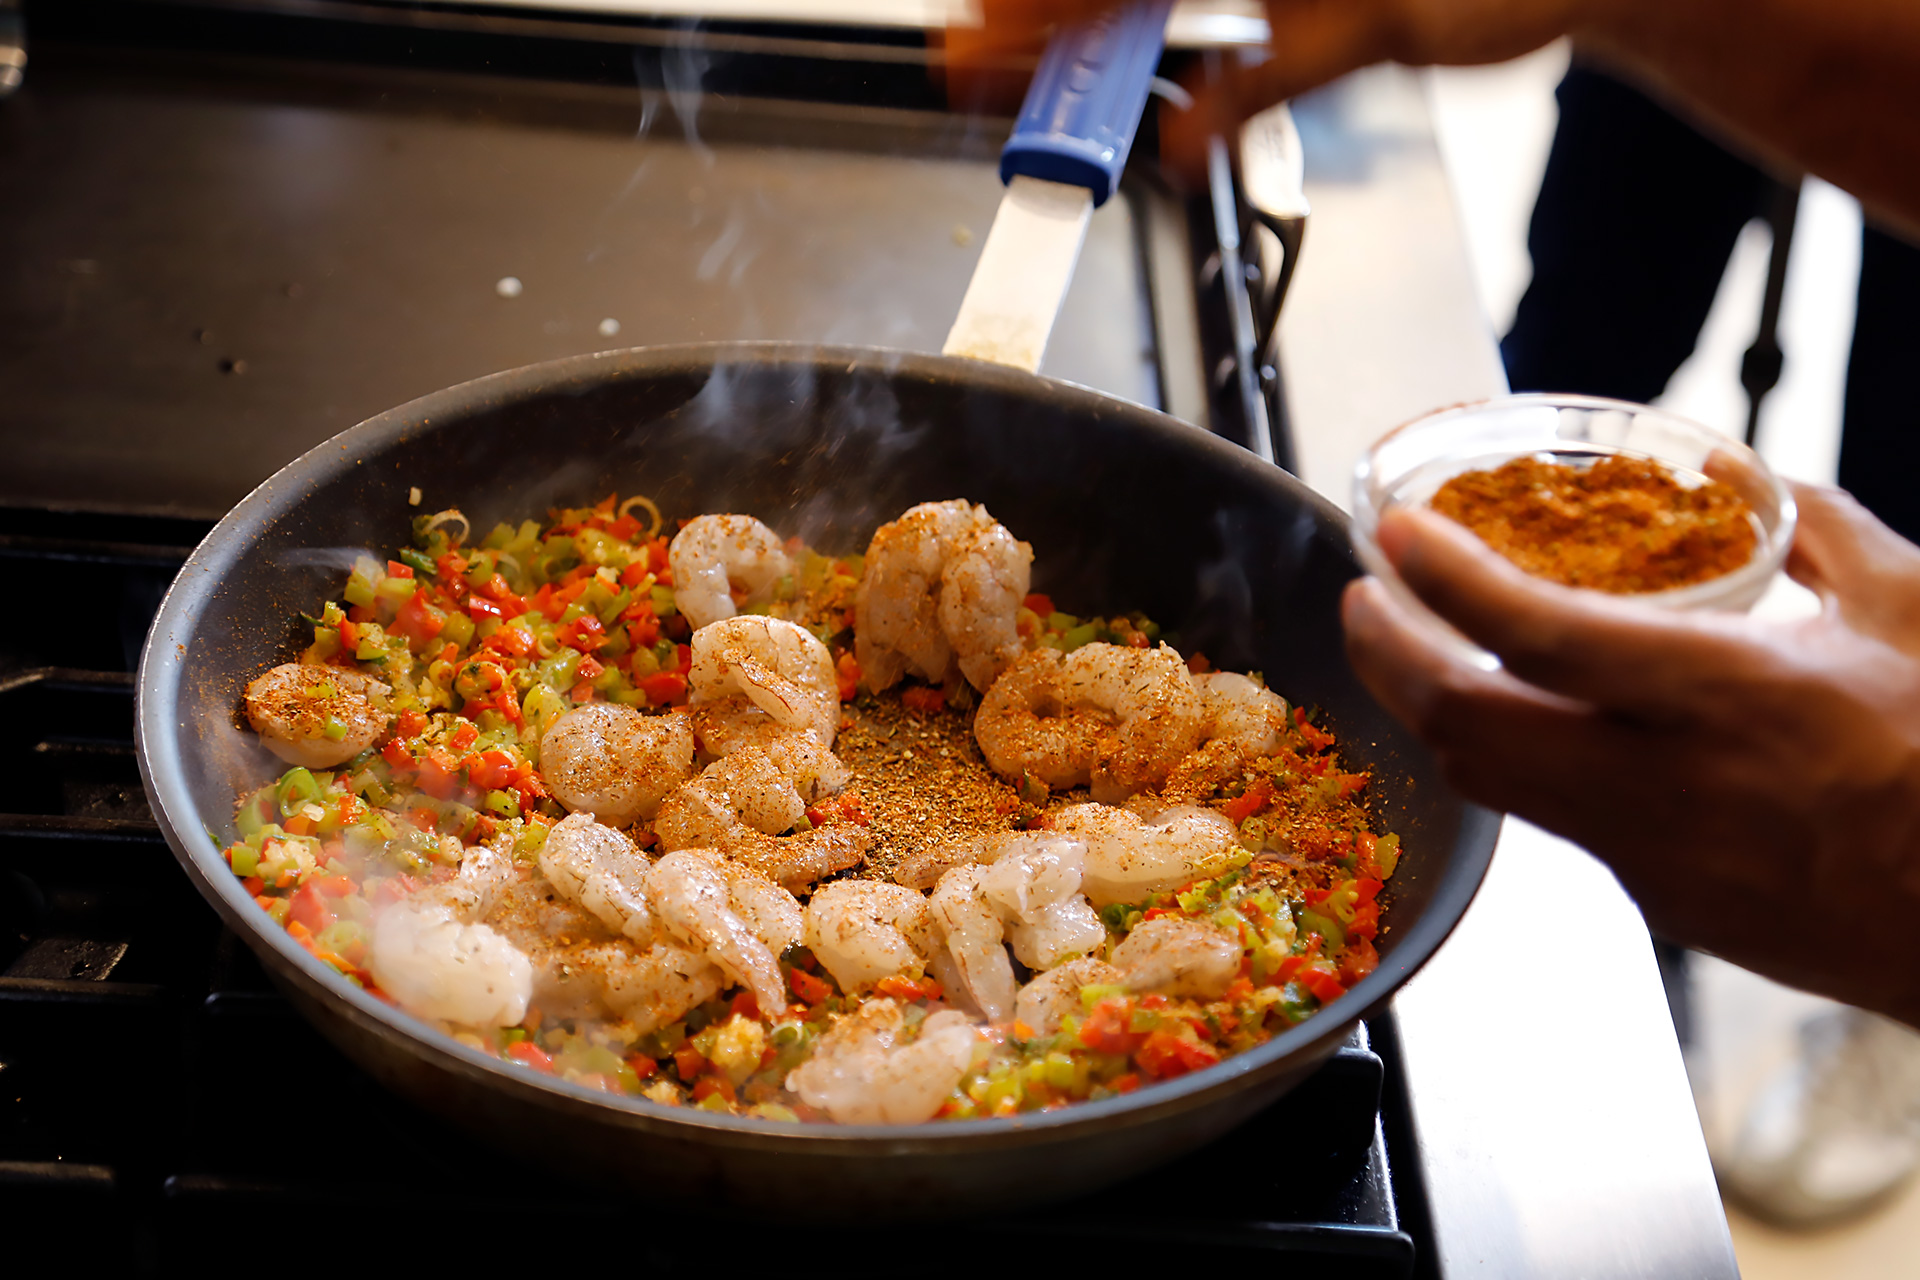 Turn shrimp and sprinkle with Creole spice then sauté until vegetables are softened, about five minutes.